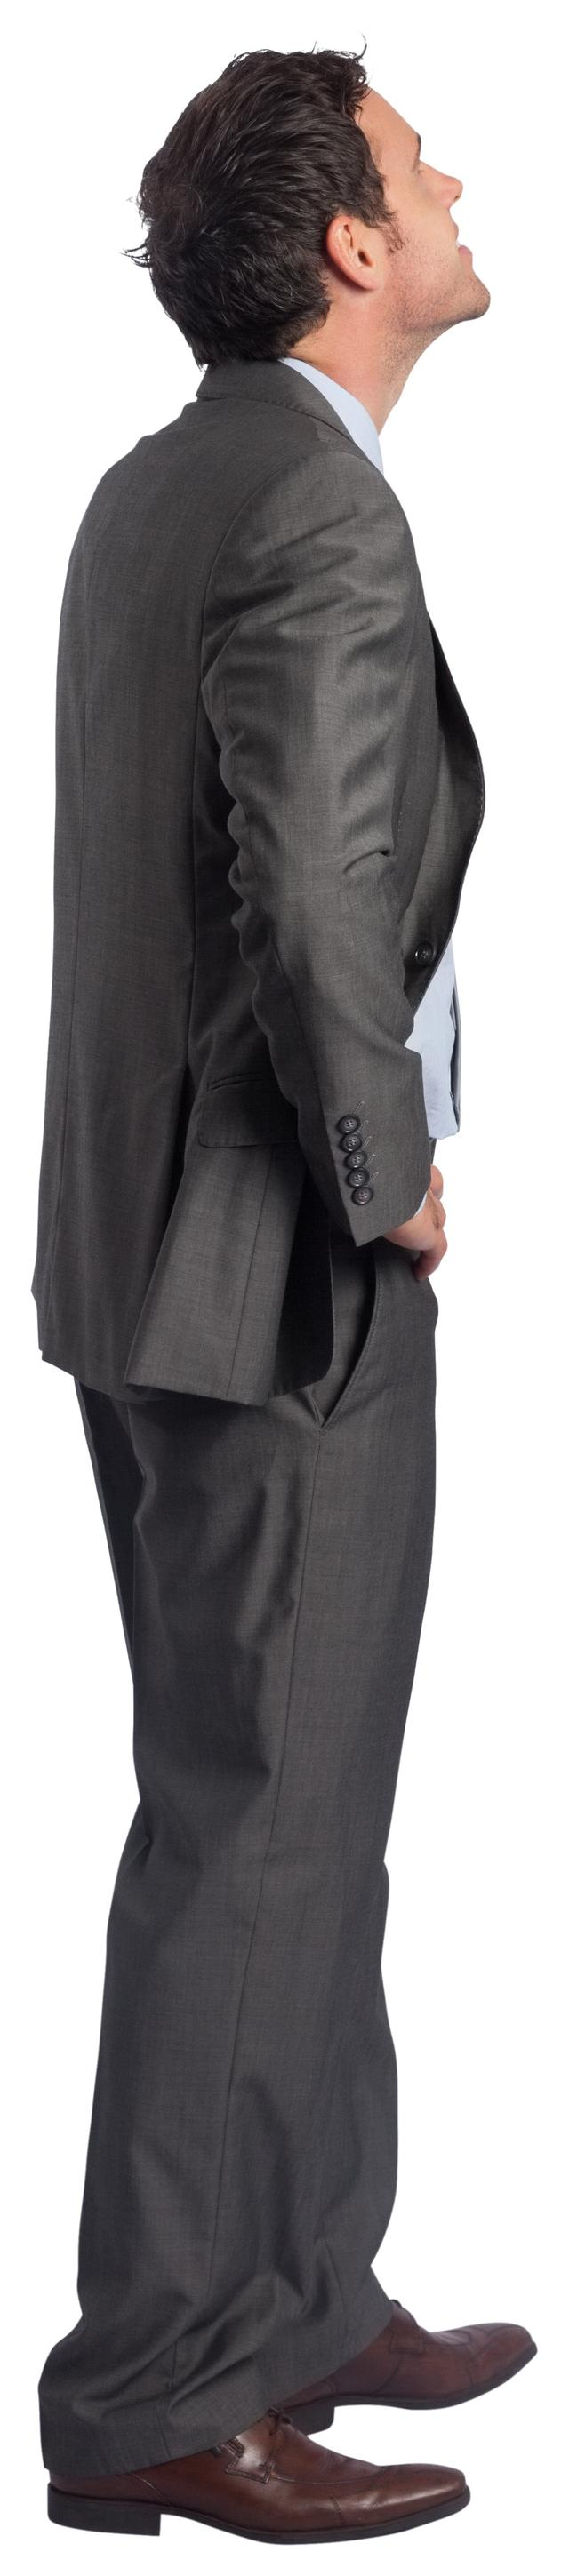 """Smiling businessman with hand on hip"" stock image"